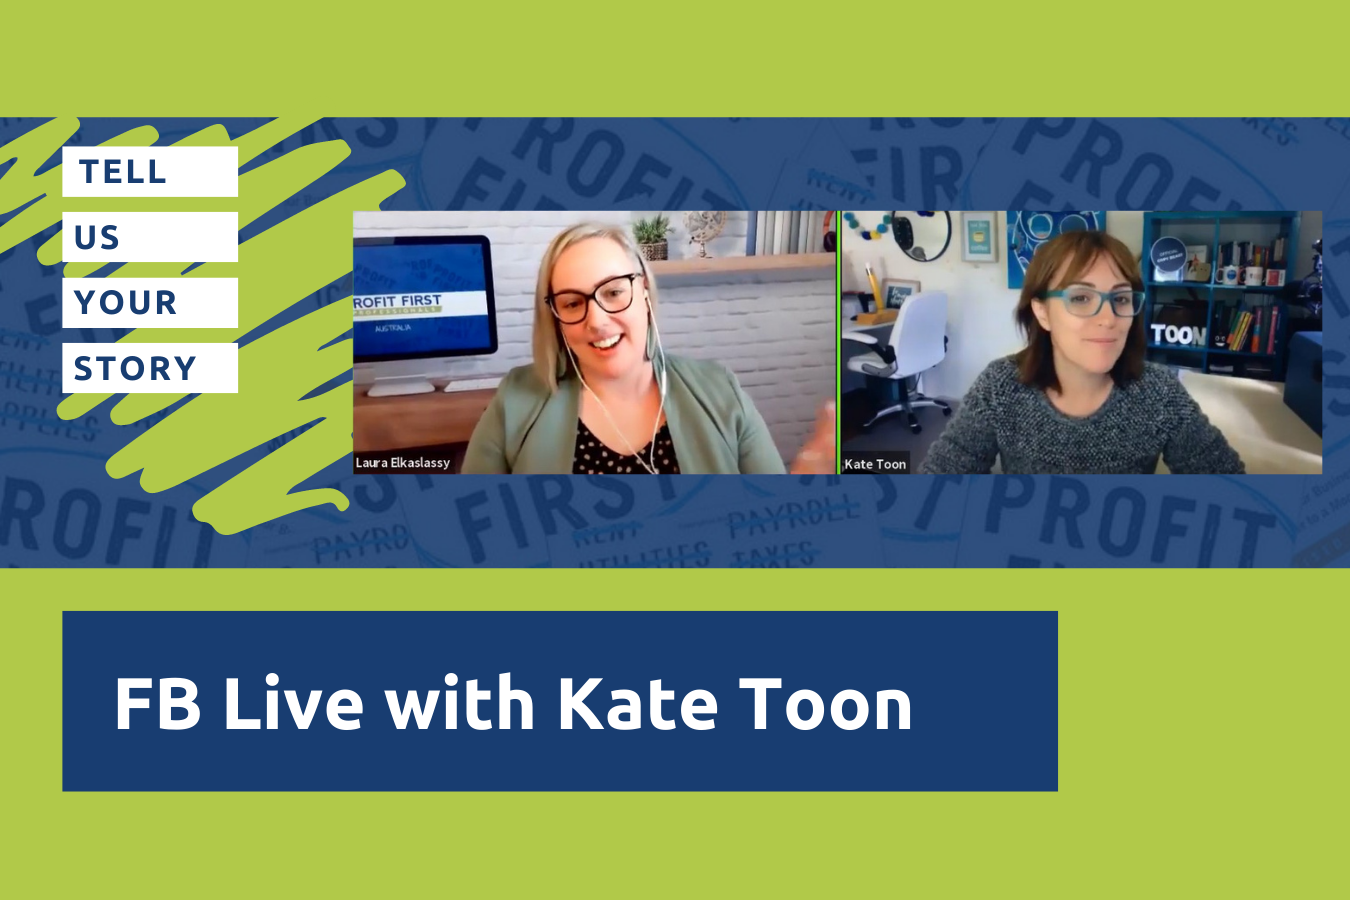 FB LIve with Kate Toon